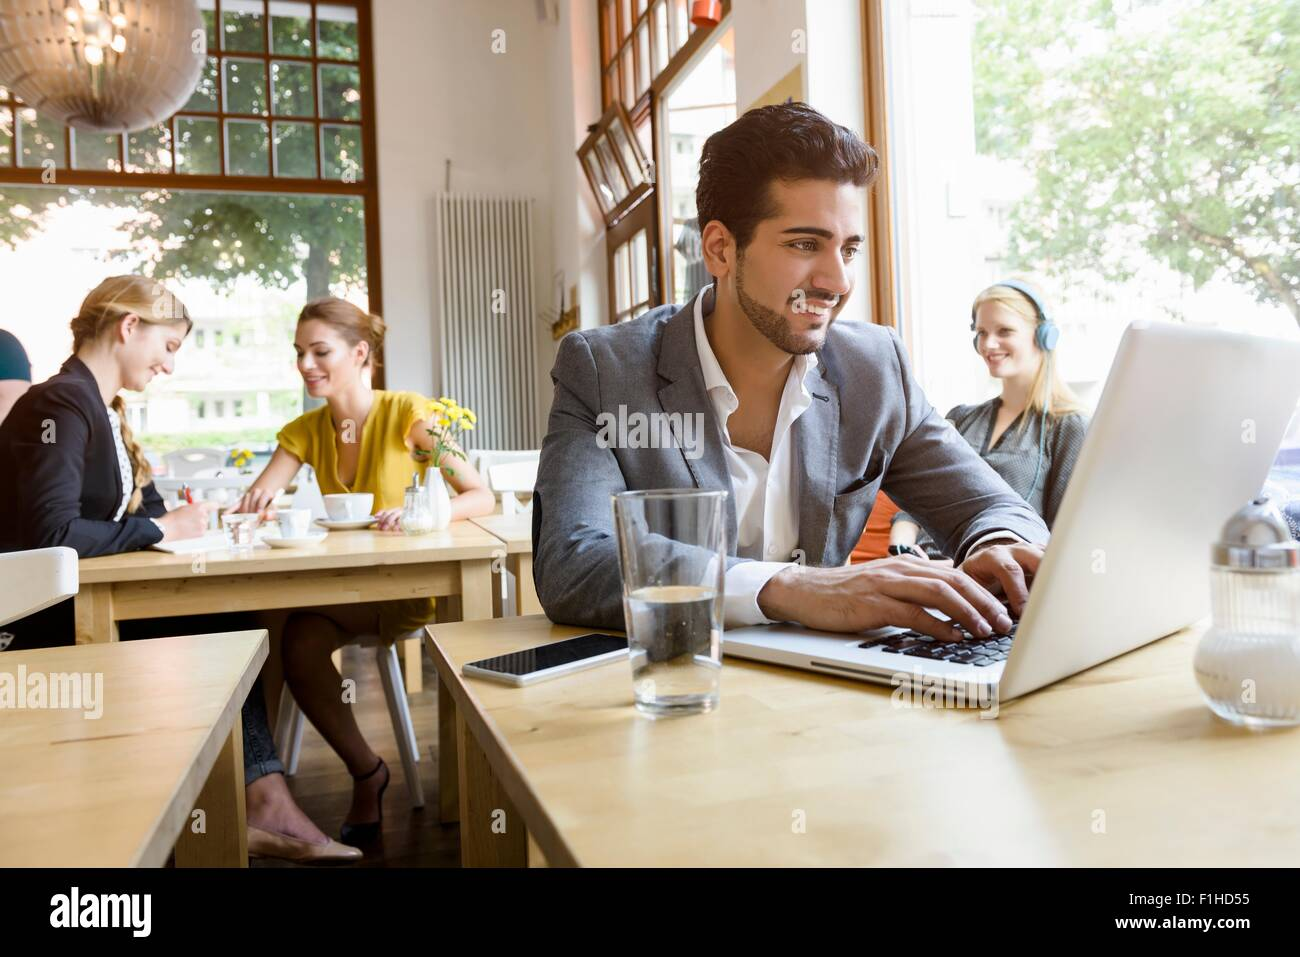 Young man using laptop in cafe Photo Stock